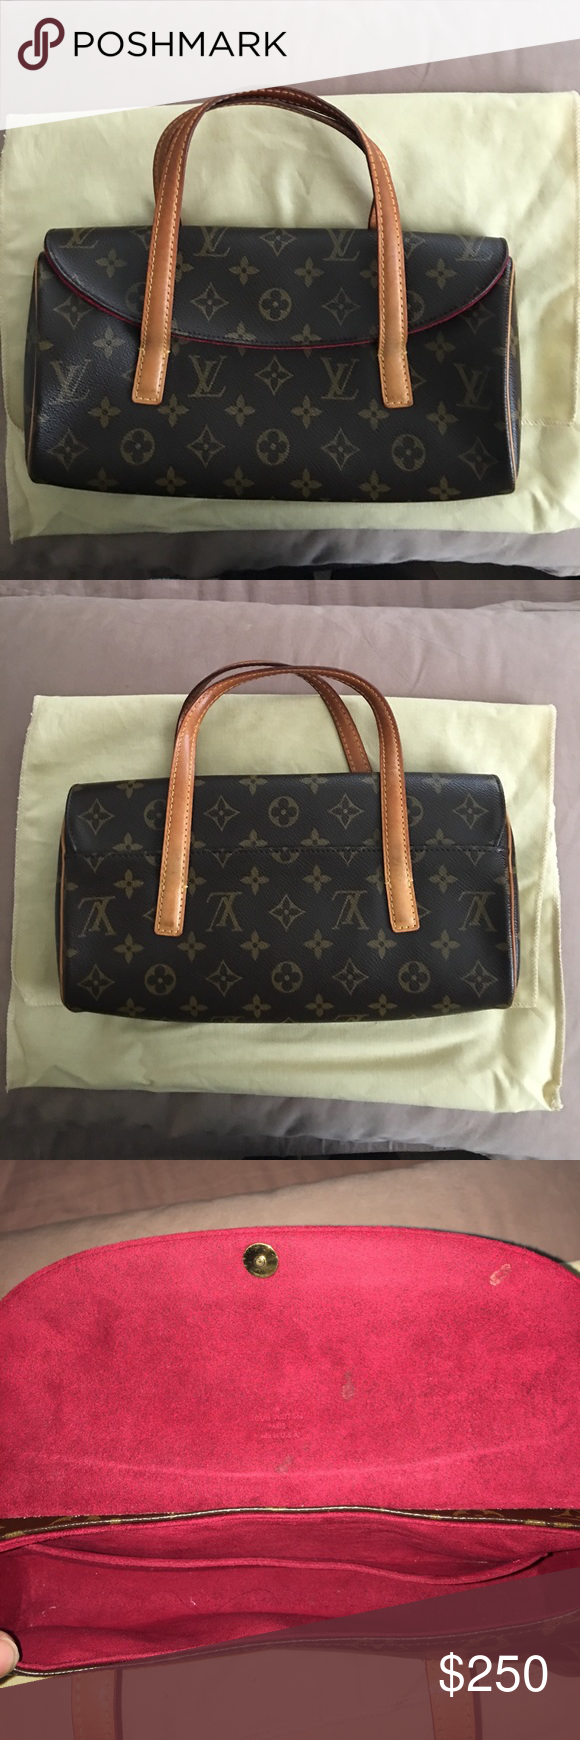 0c0ae257b0b0 Louis Vuitton monogram sonatine flap handbag Cute small LV mini bag hand  held or carry in